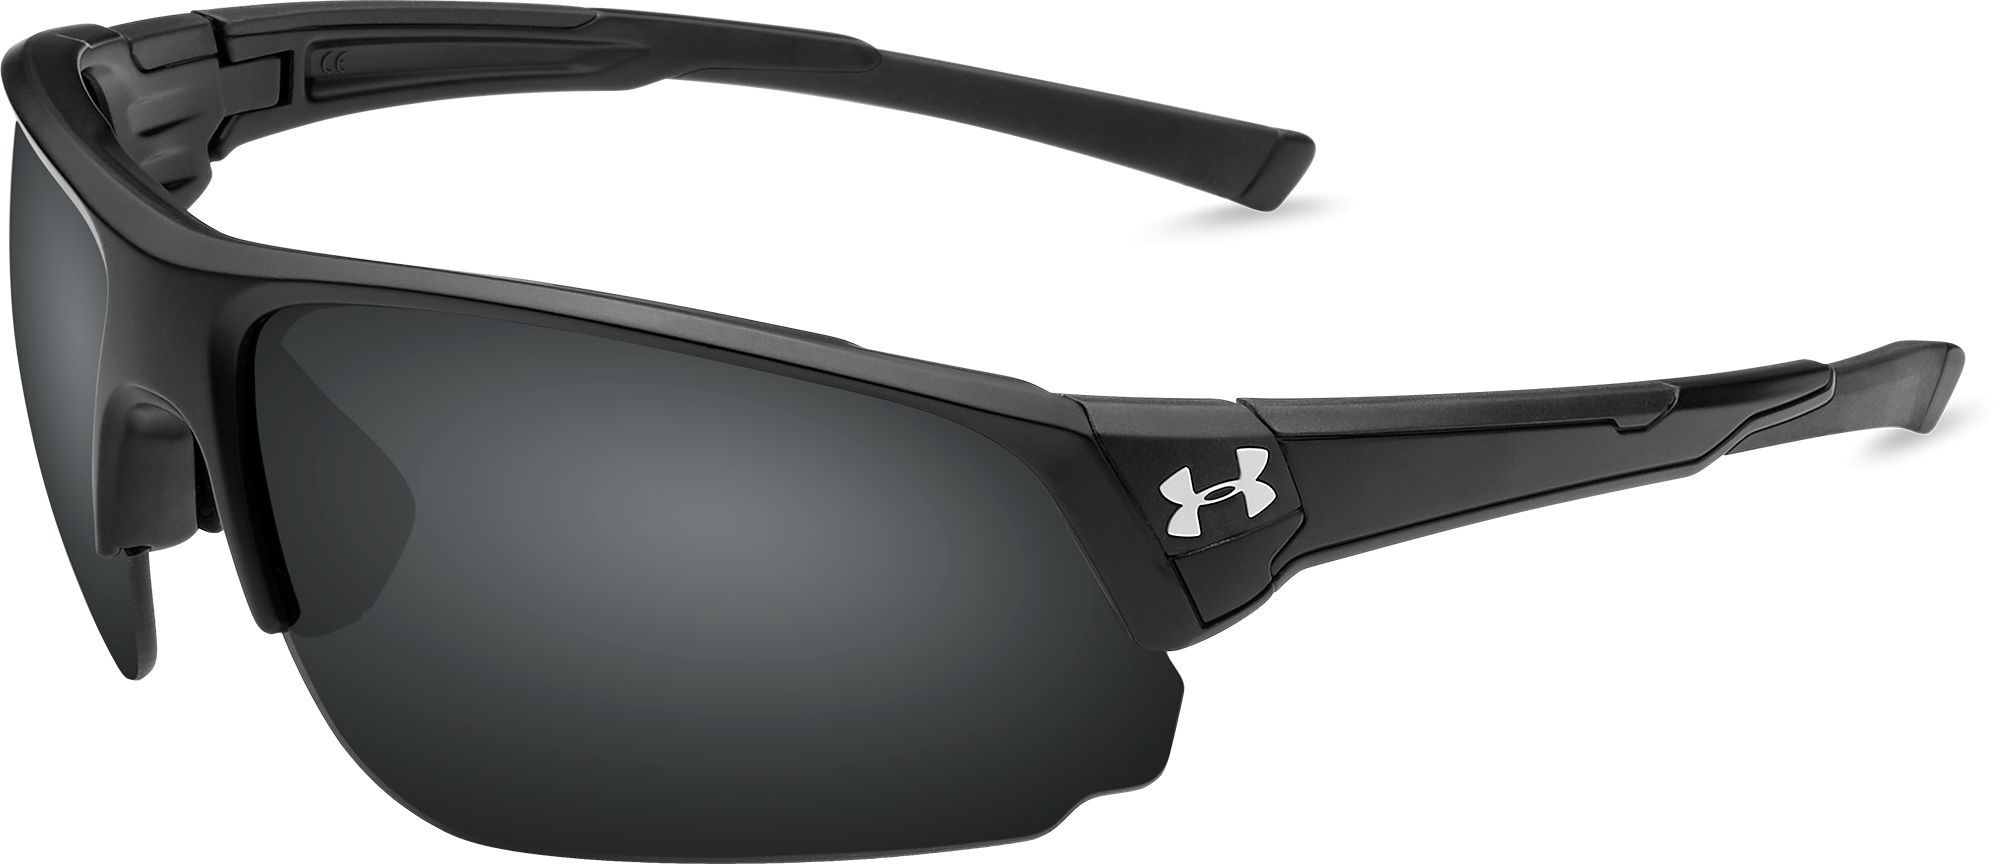 bc1186caac Under Armour Men's Changeup Dual Sunglasses in 2019 | Products ...